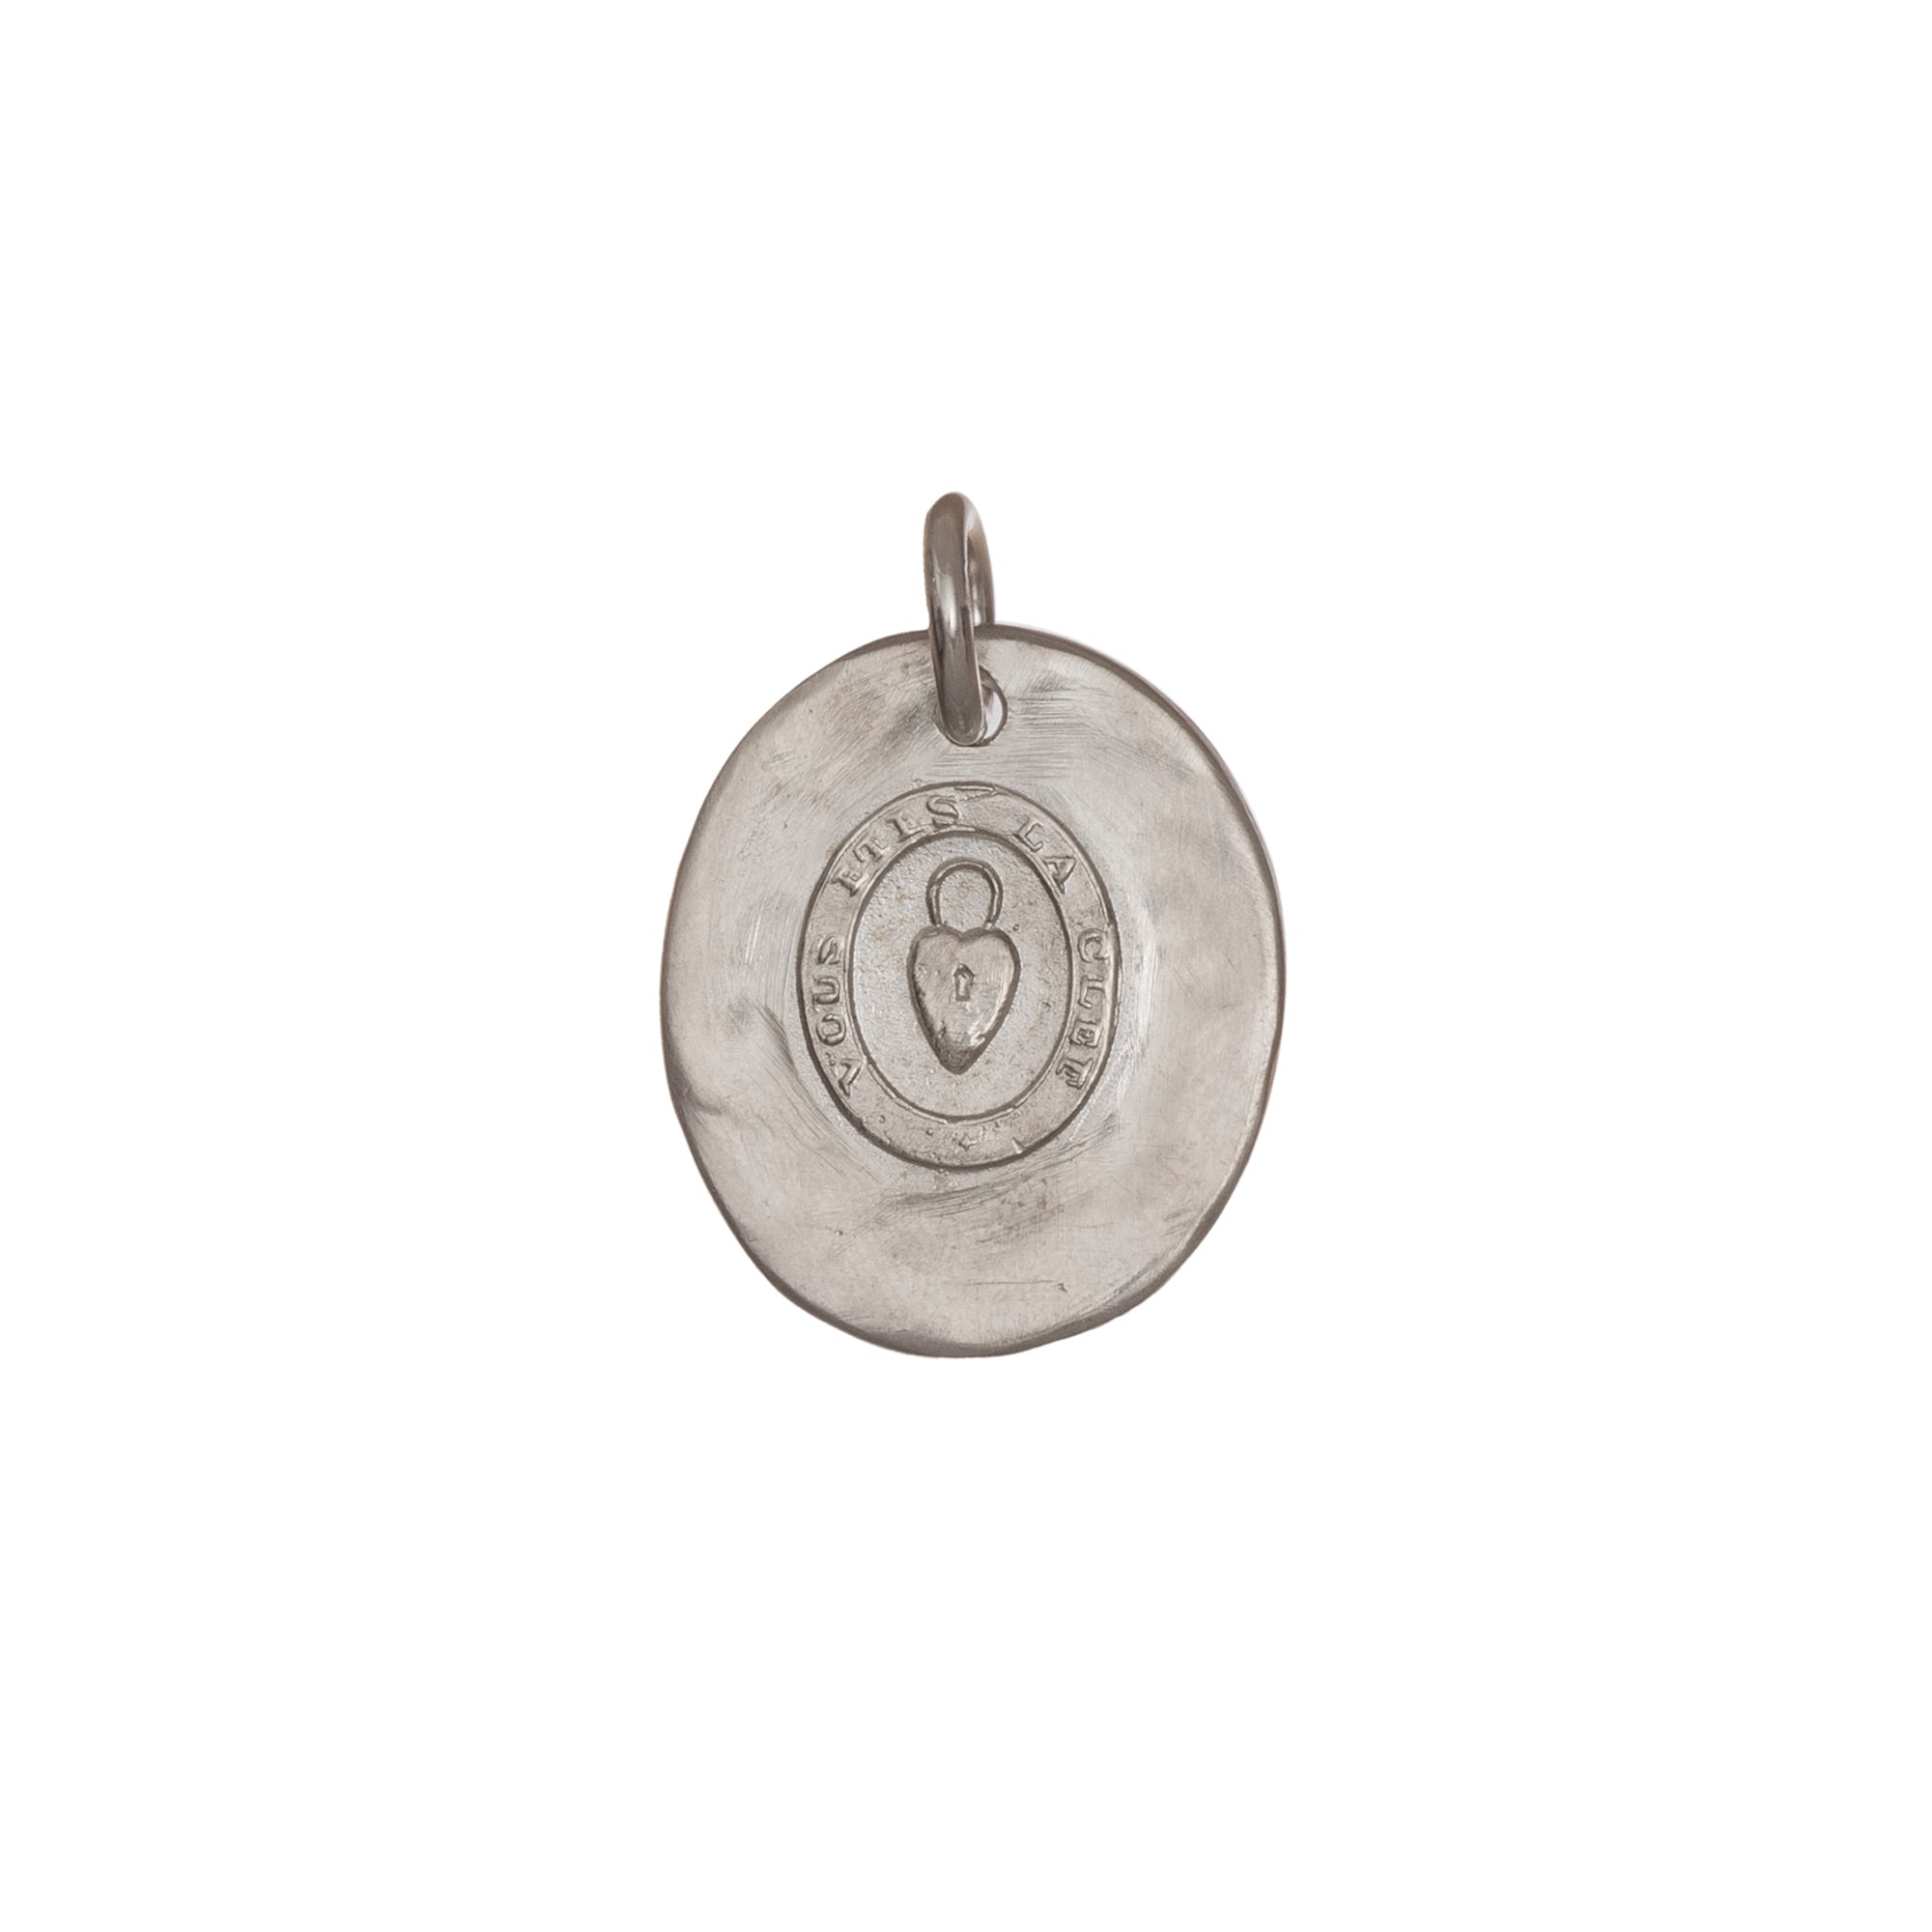 SS Vous Etes La Cle Pendant by James Colarusso for Broken English Jewelry